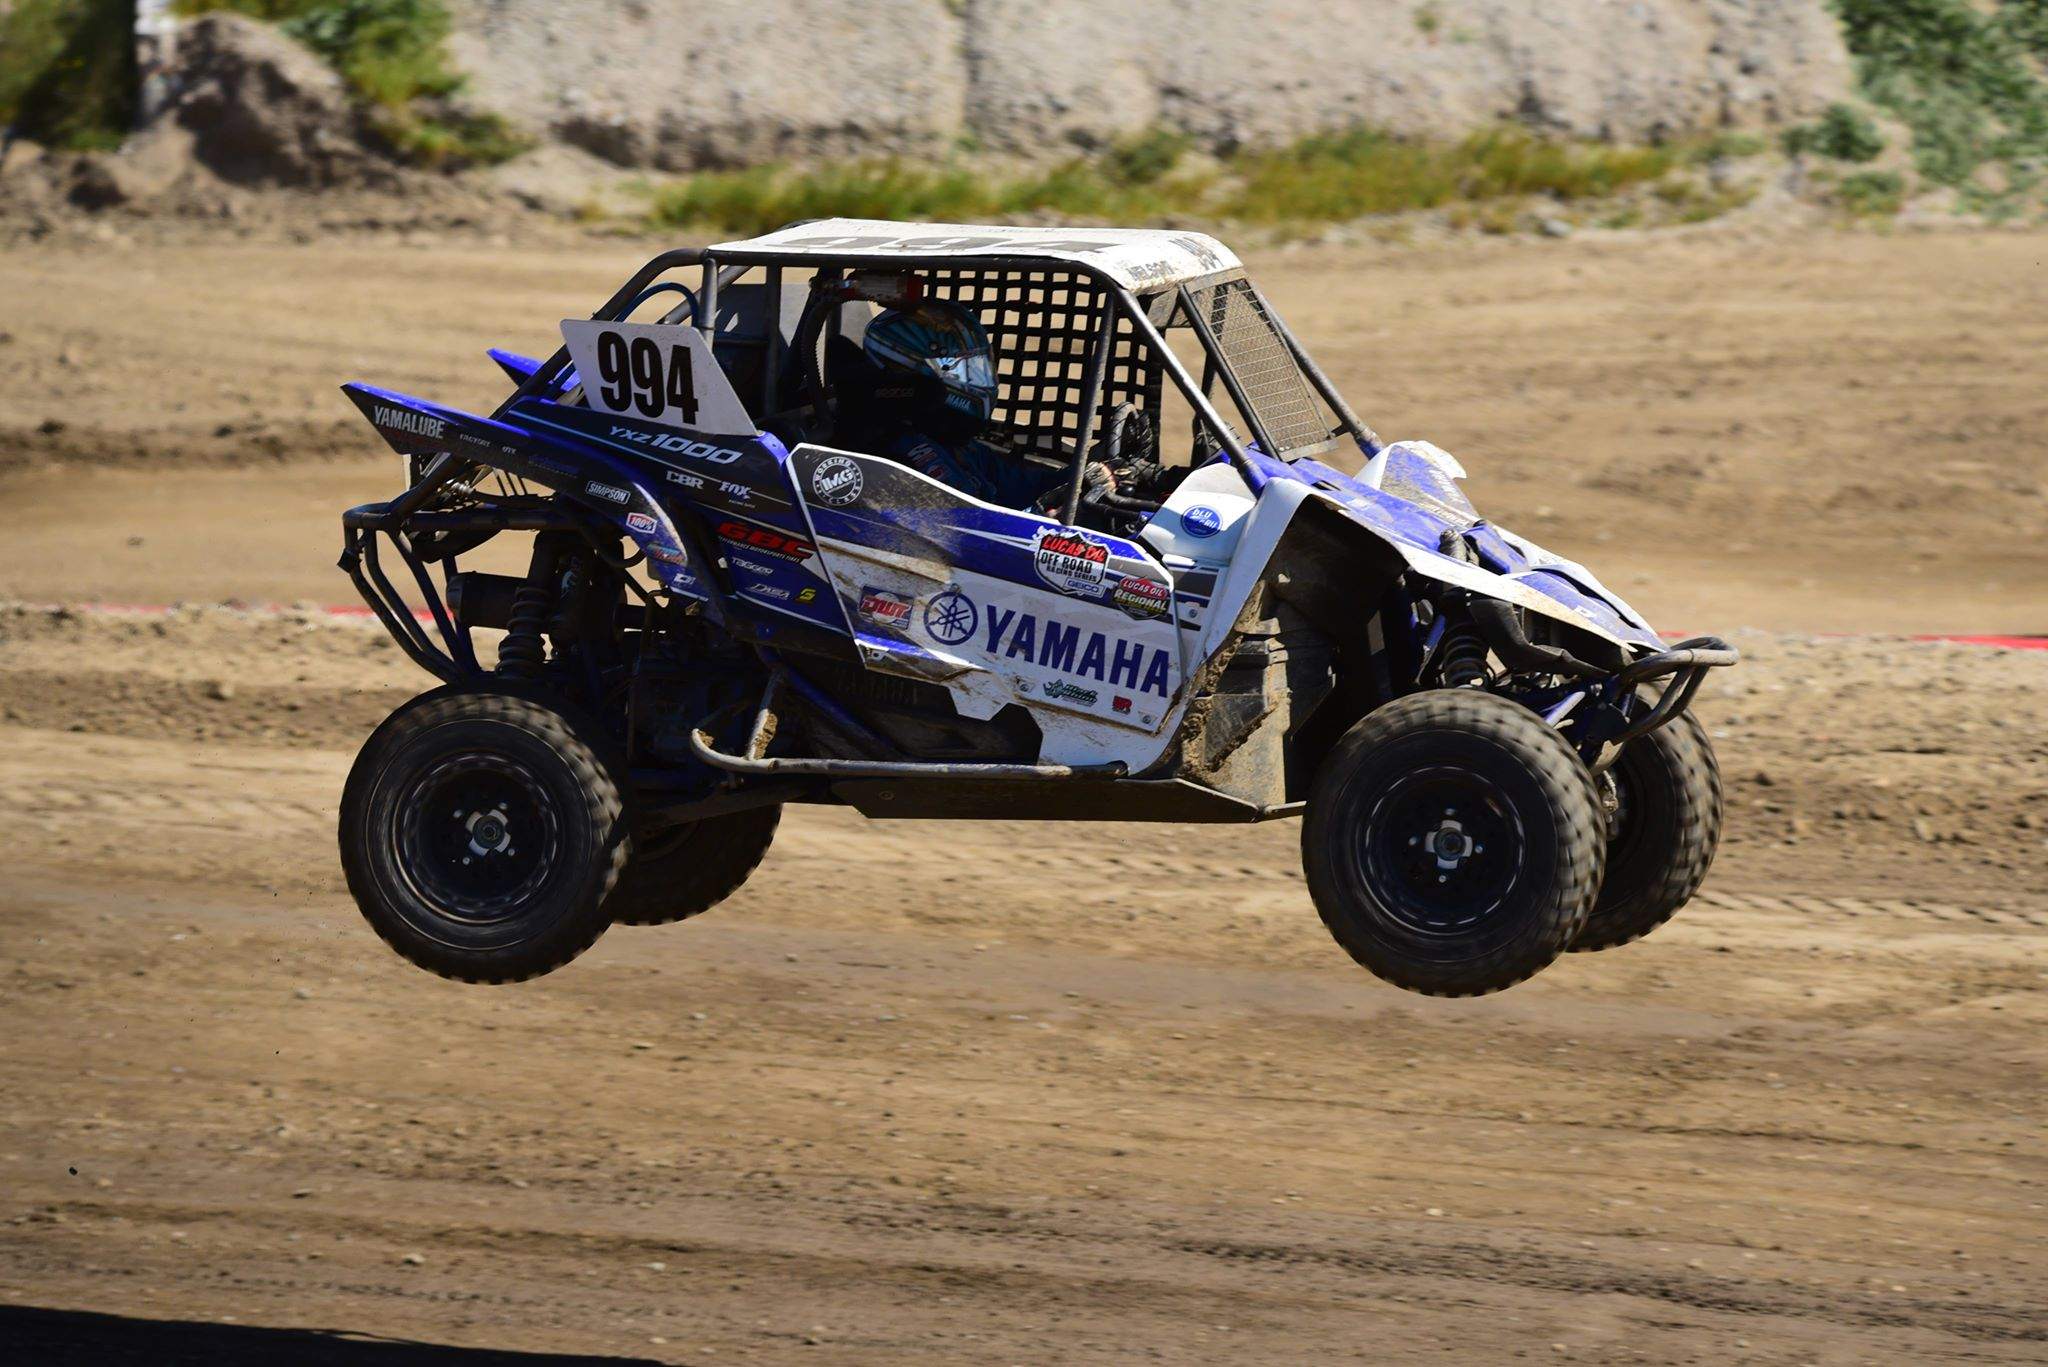 Yamaha ATV and Side-by-Side bLU cRU Racers Starting Strong in 2019 - Dustin Nelson YXZ1000R